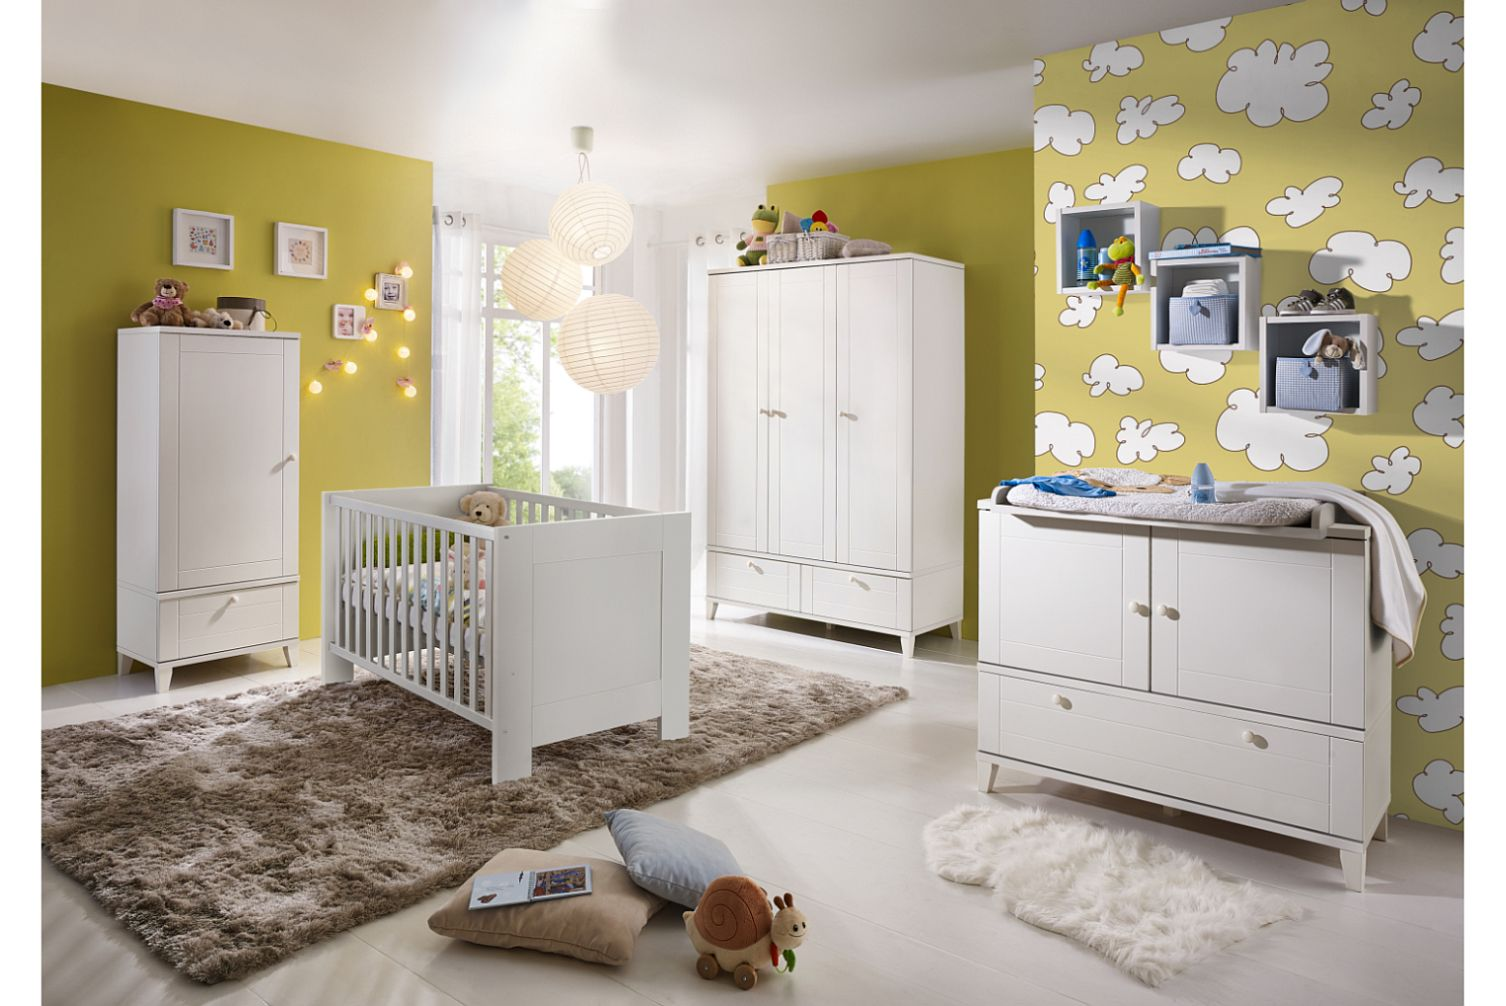 komplettset babym bel kinderzimmer babyzimmer babym bel set wickeltisch babybett ebay. Black Bedroom Furniture Sets. Home Design Ideas